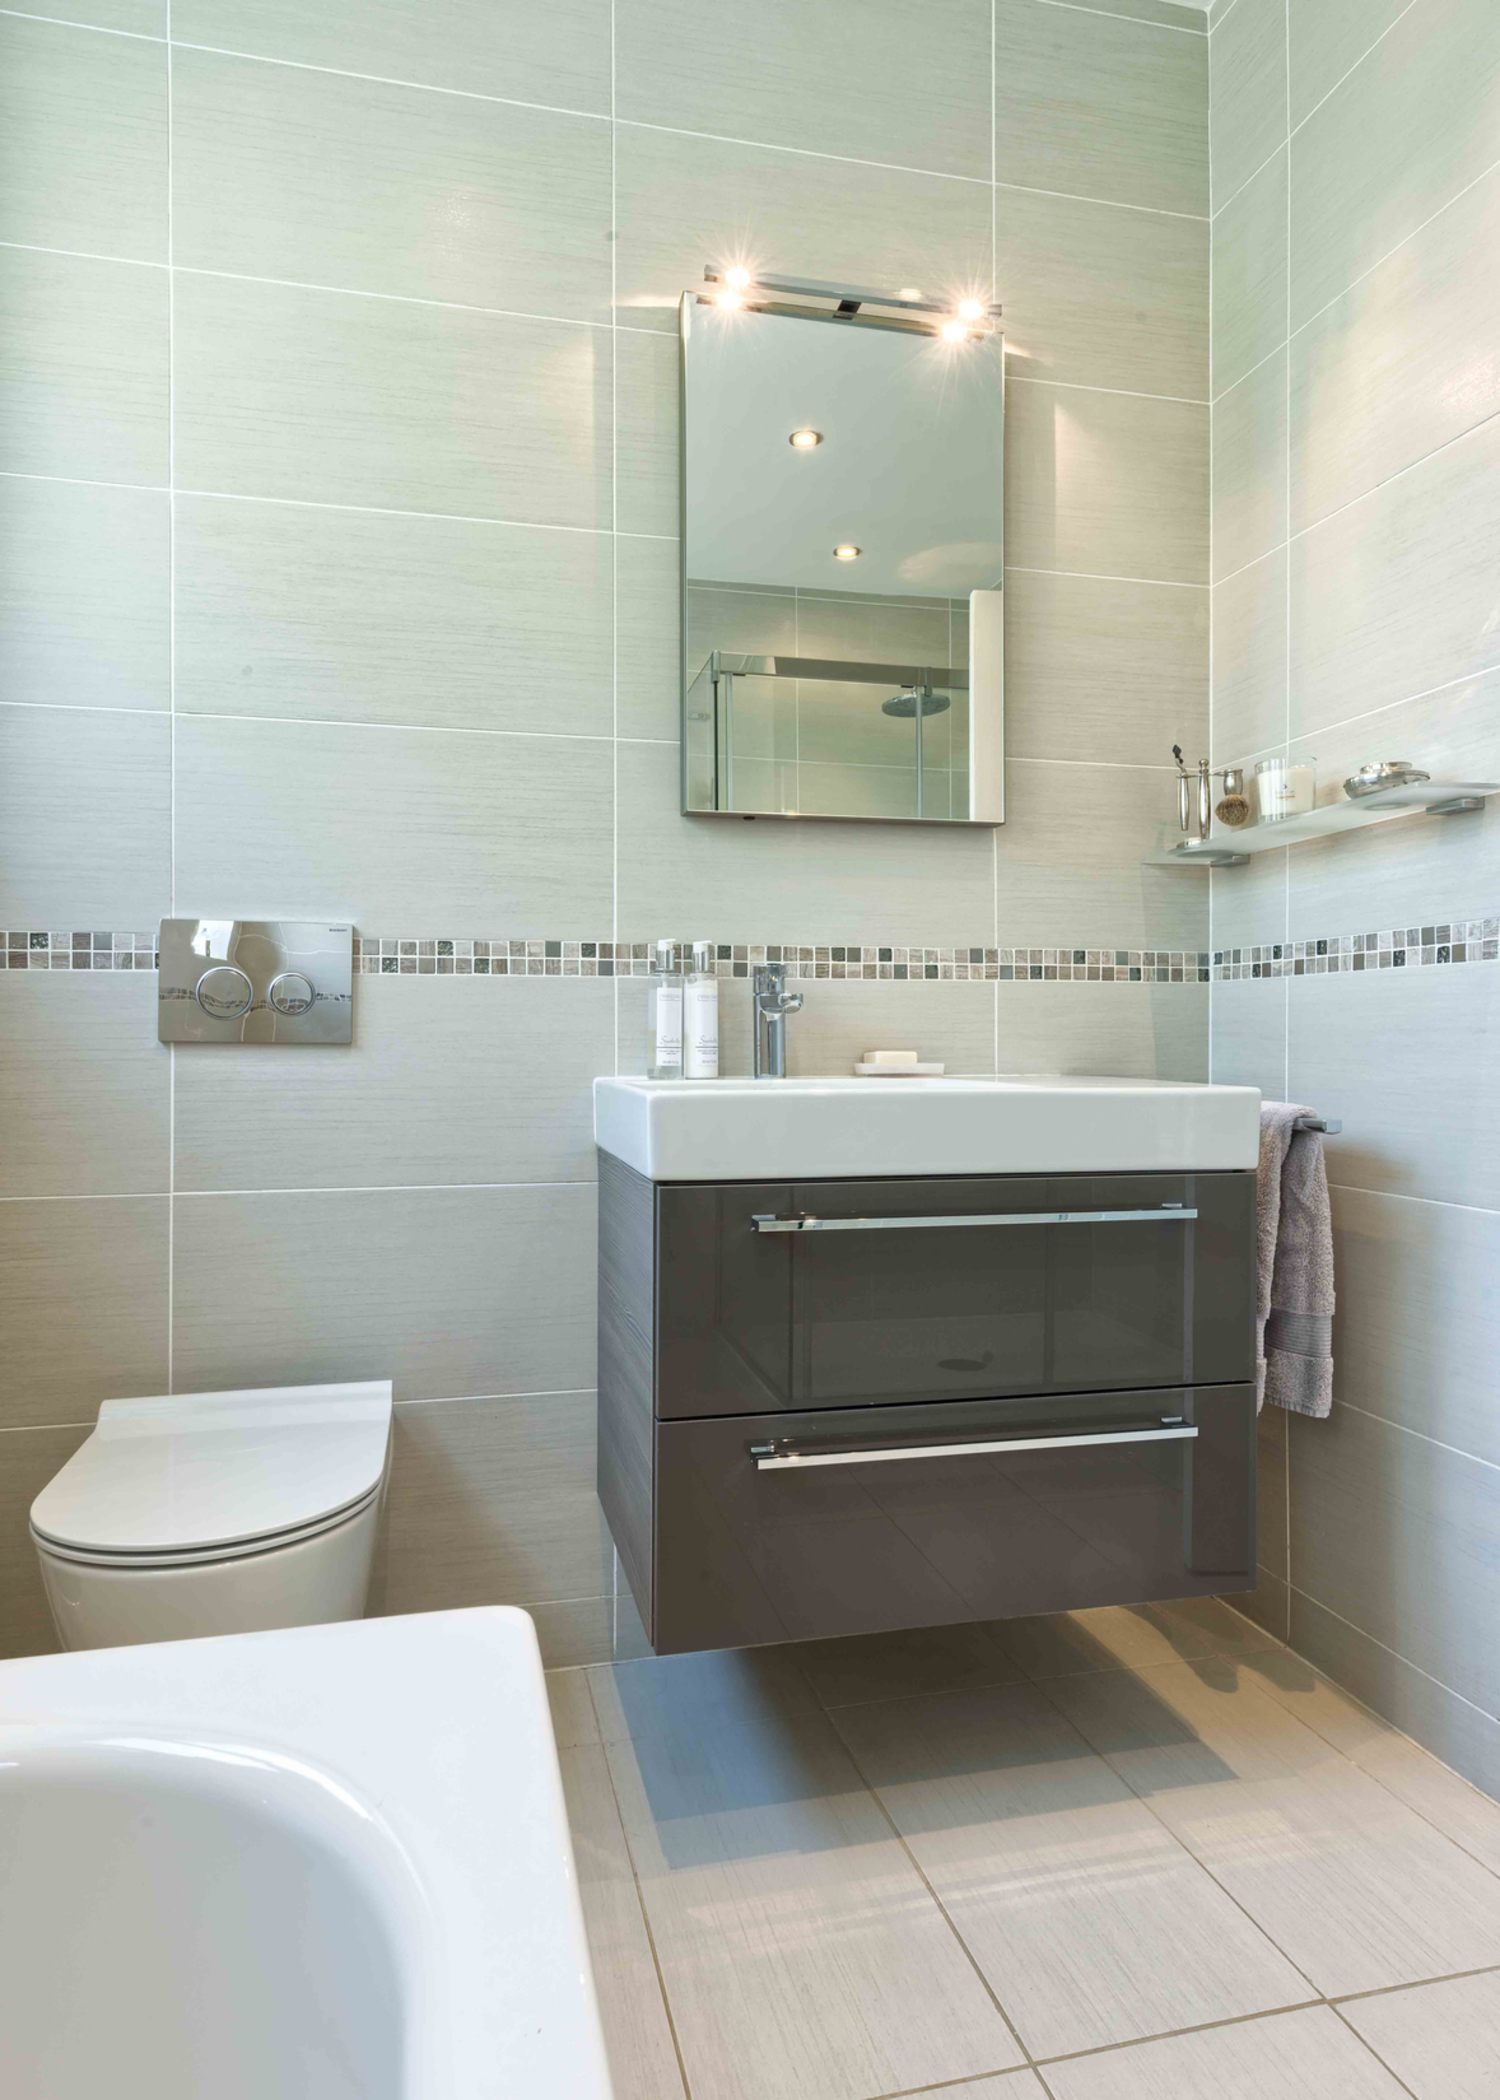 The bathroom sink a house extension by Harvey Norman Architects St Albans